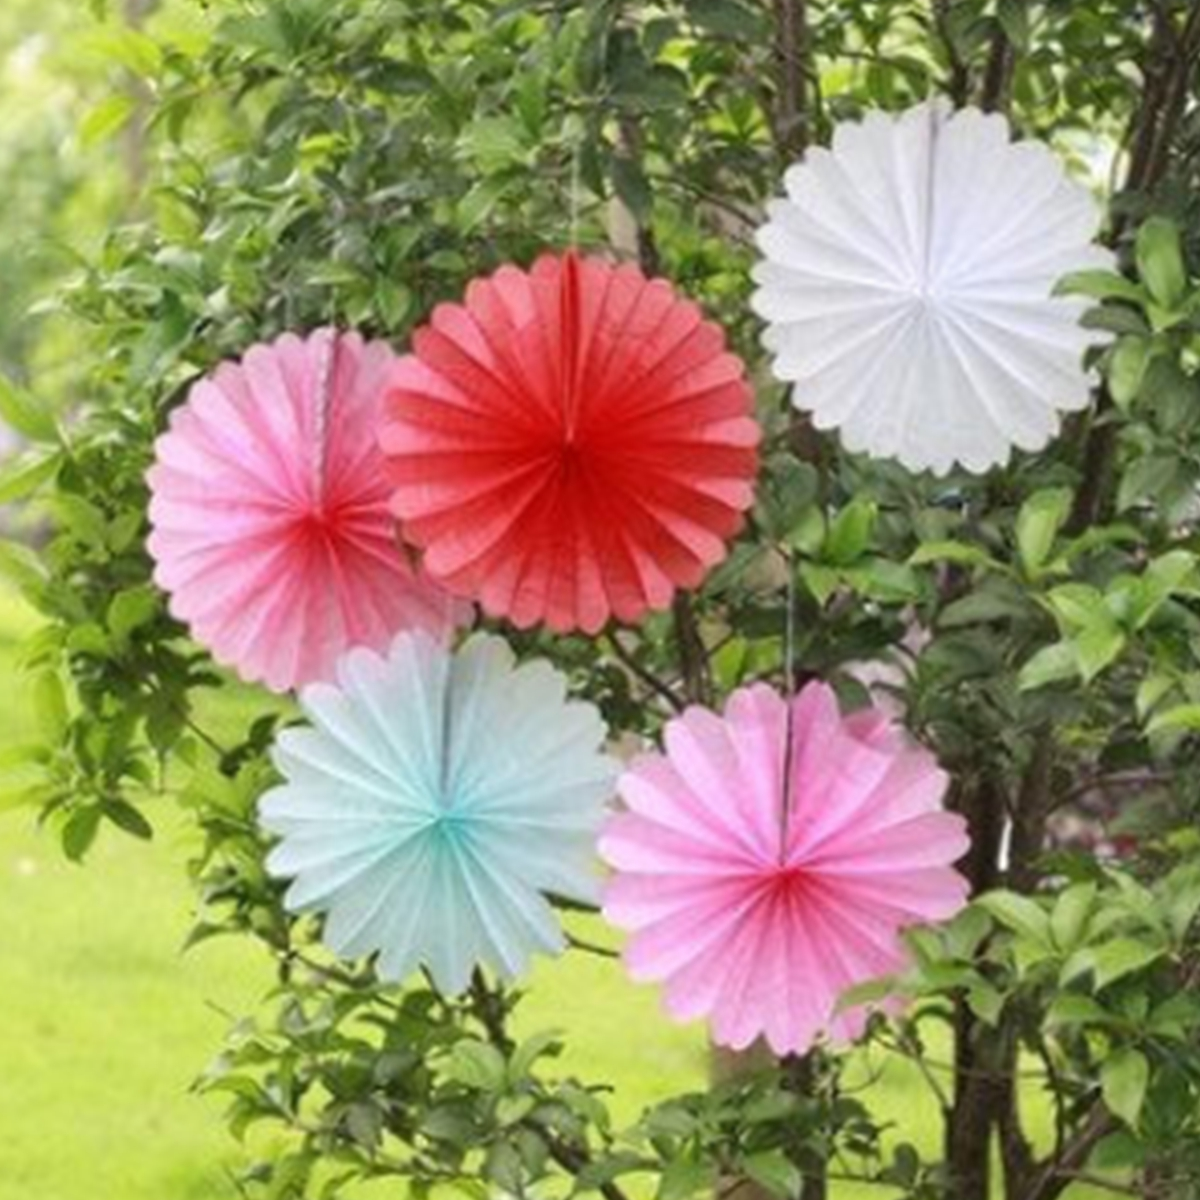 30cm 12'' Hanging Tissue Fan Paper Pom Poms Party Balls Wedding Christmas Party Decoration